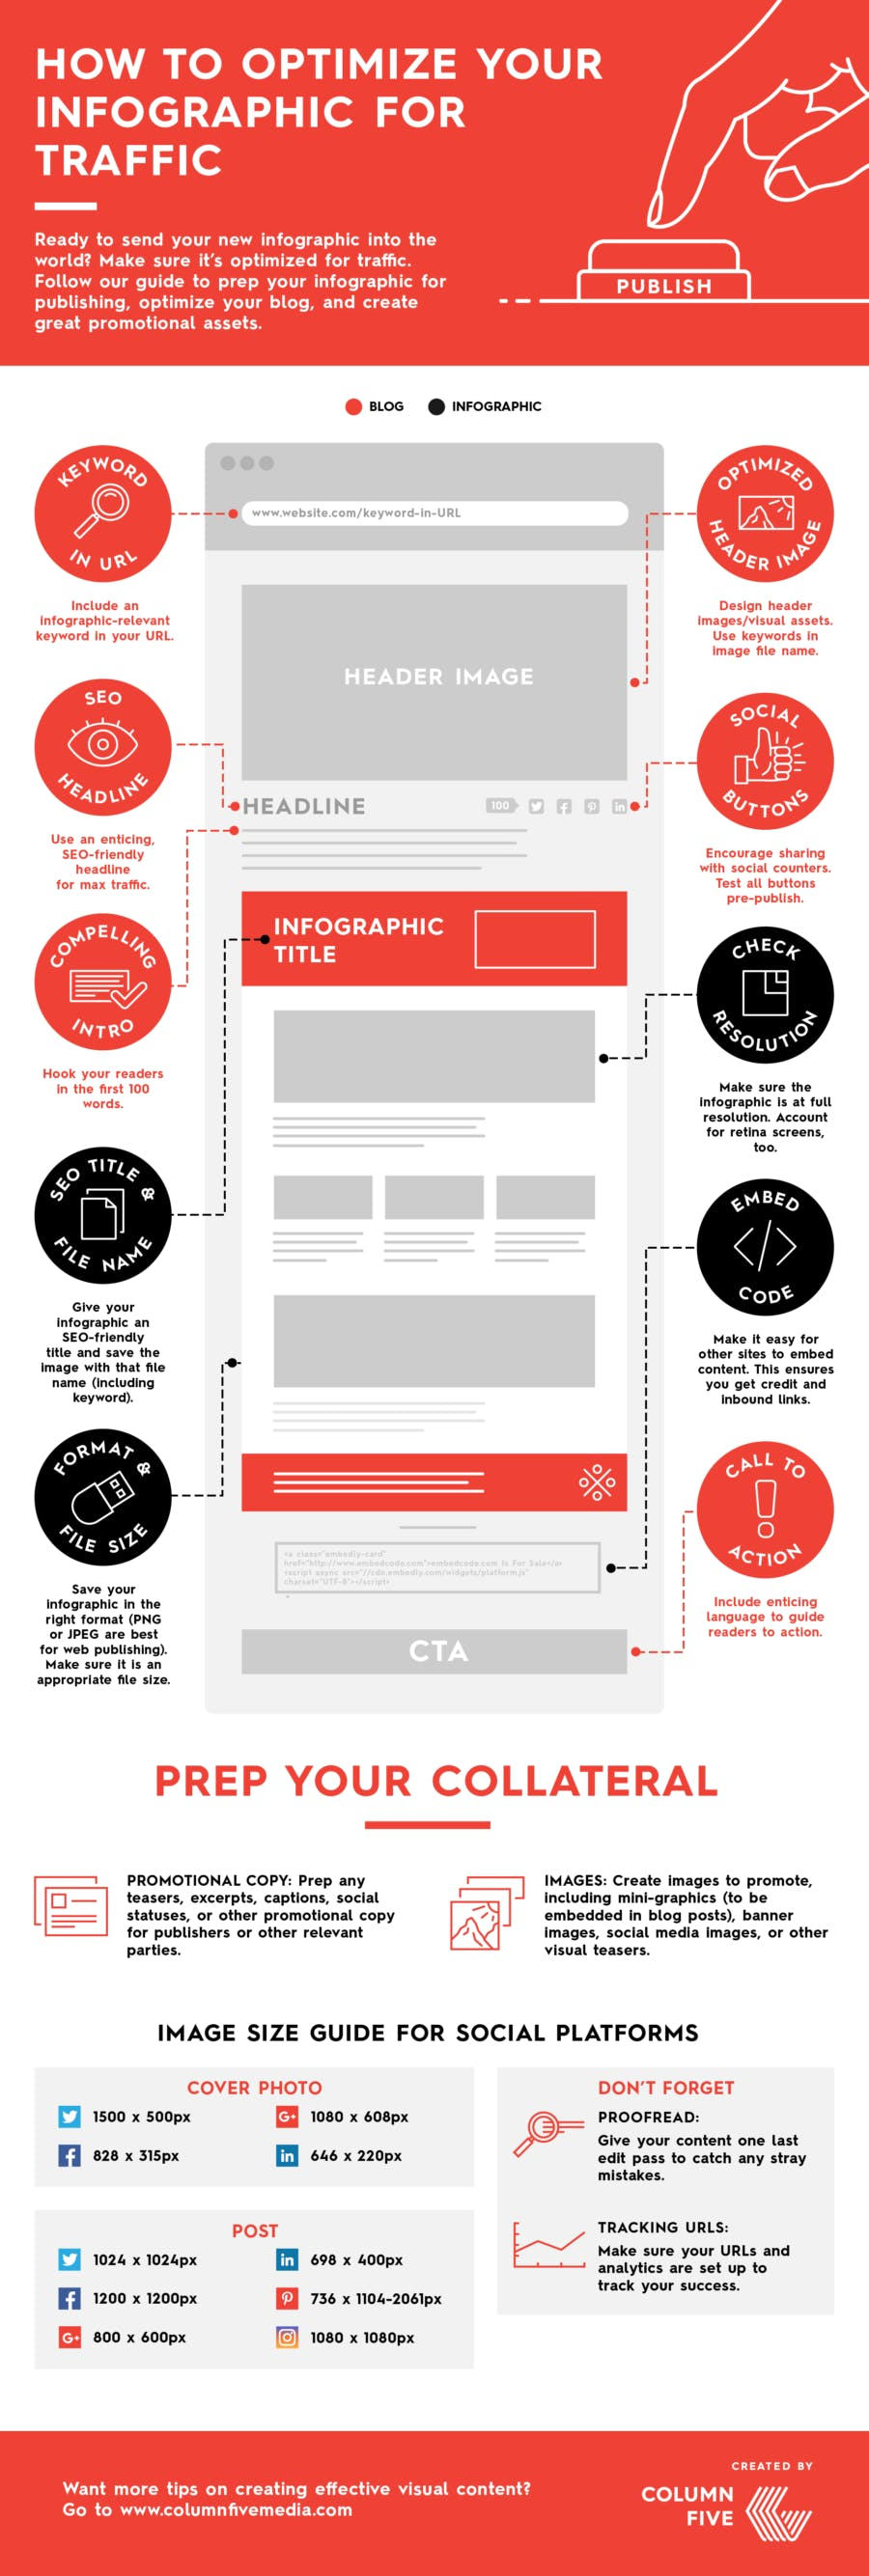 Infographic example red